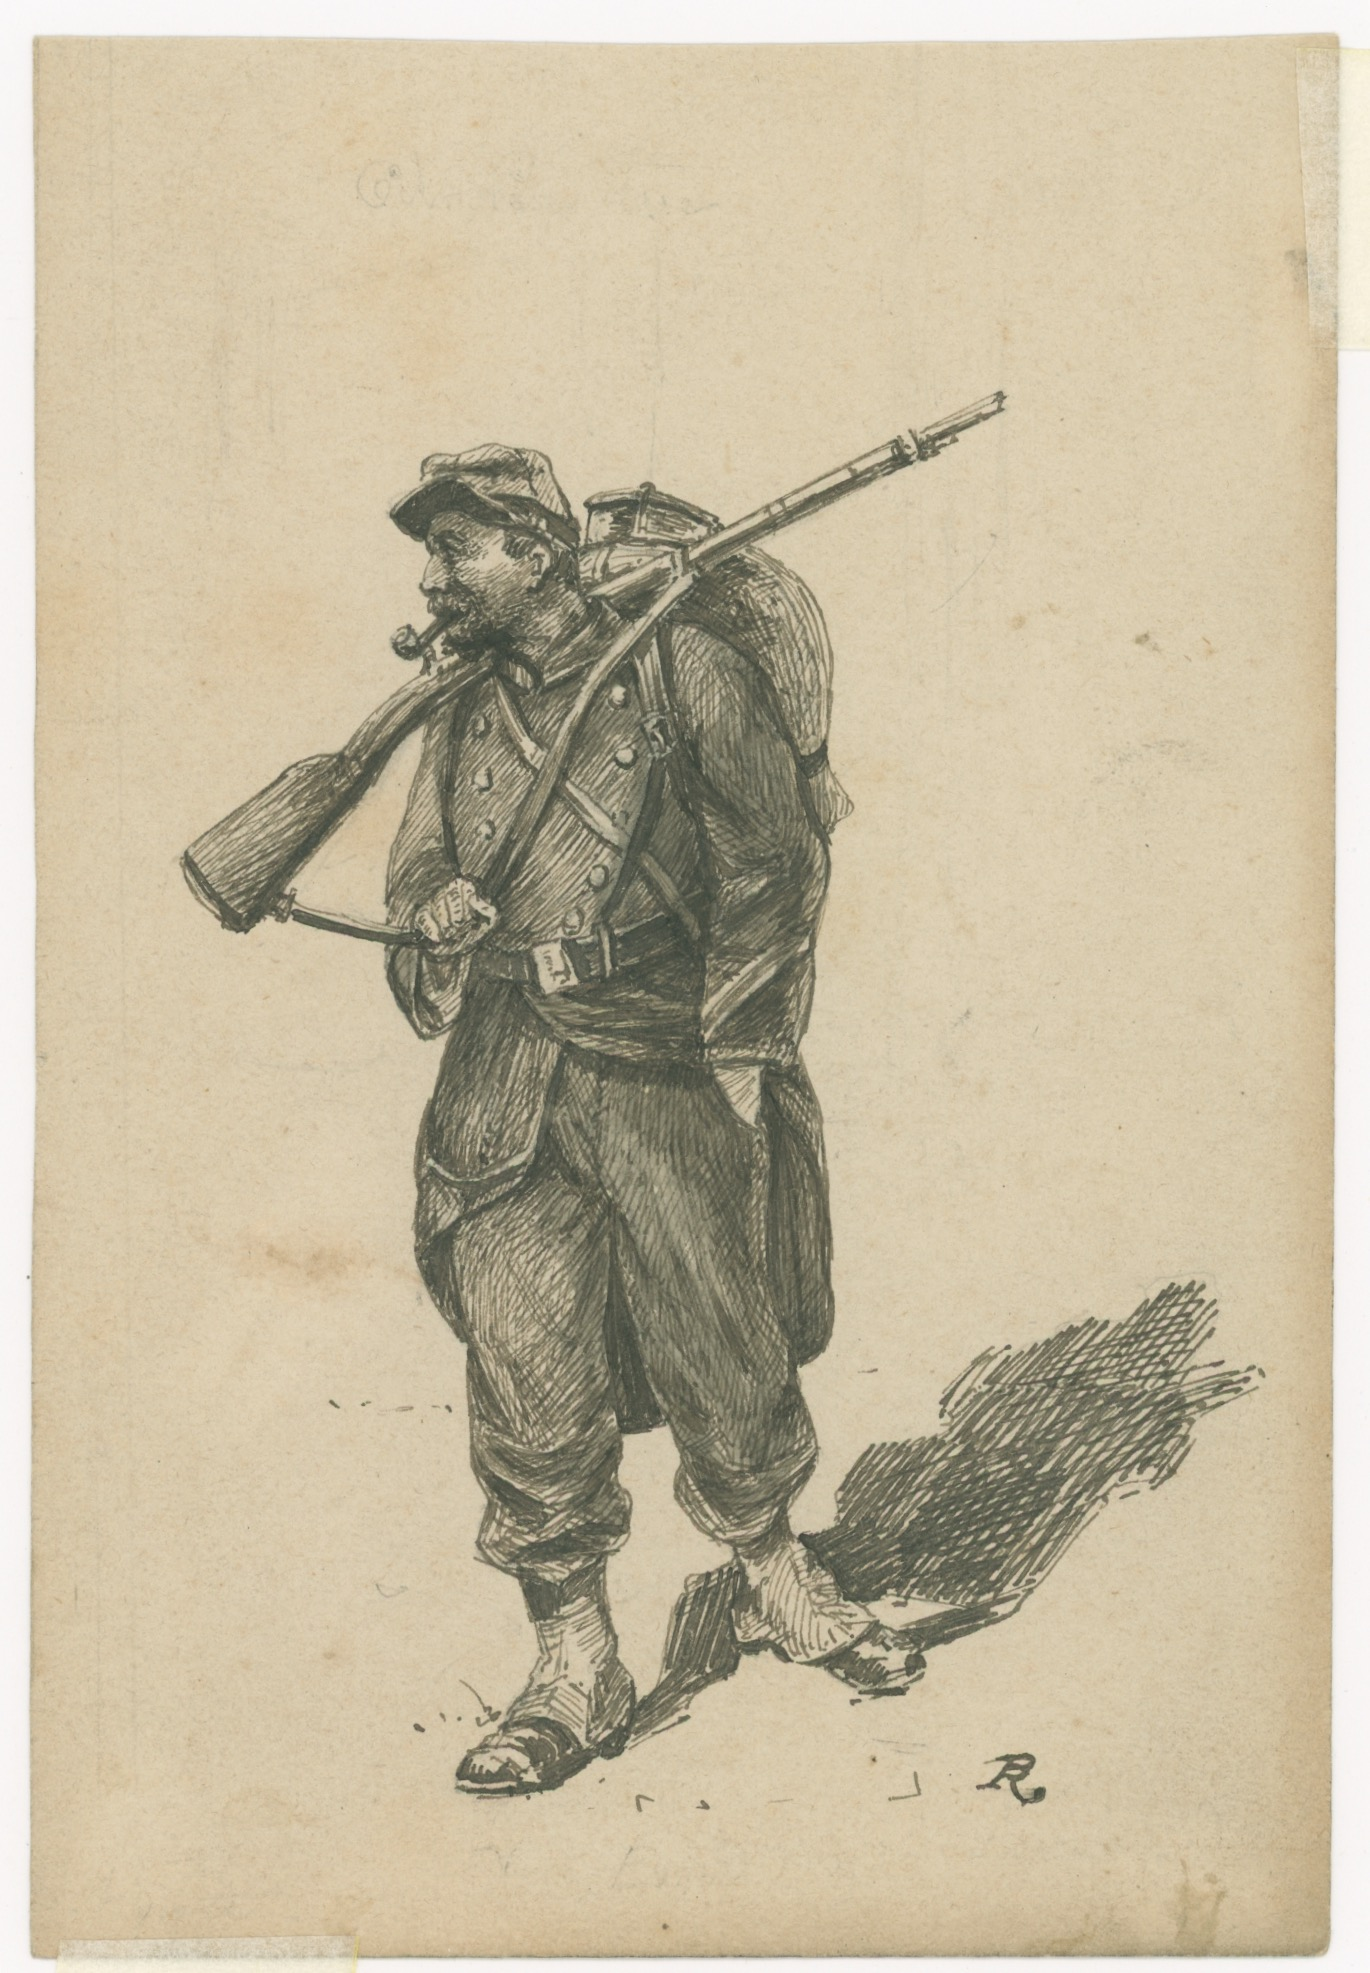 Dessin à la plume - Infanterie - 1860/1870 - Uniforme - Second Empire - Uniforme - Soldat